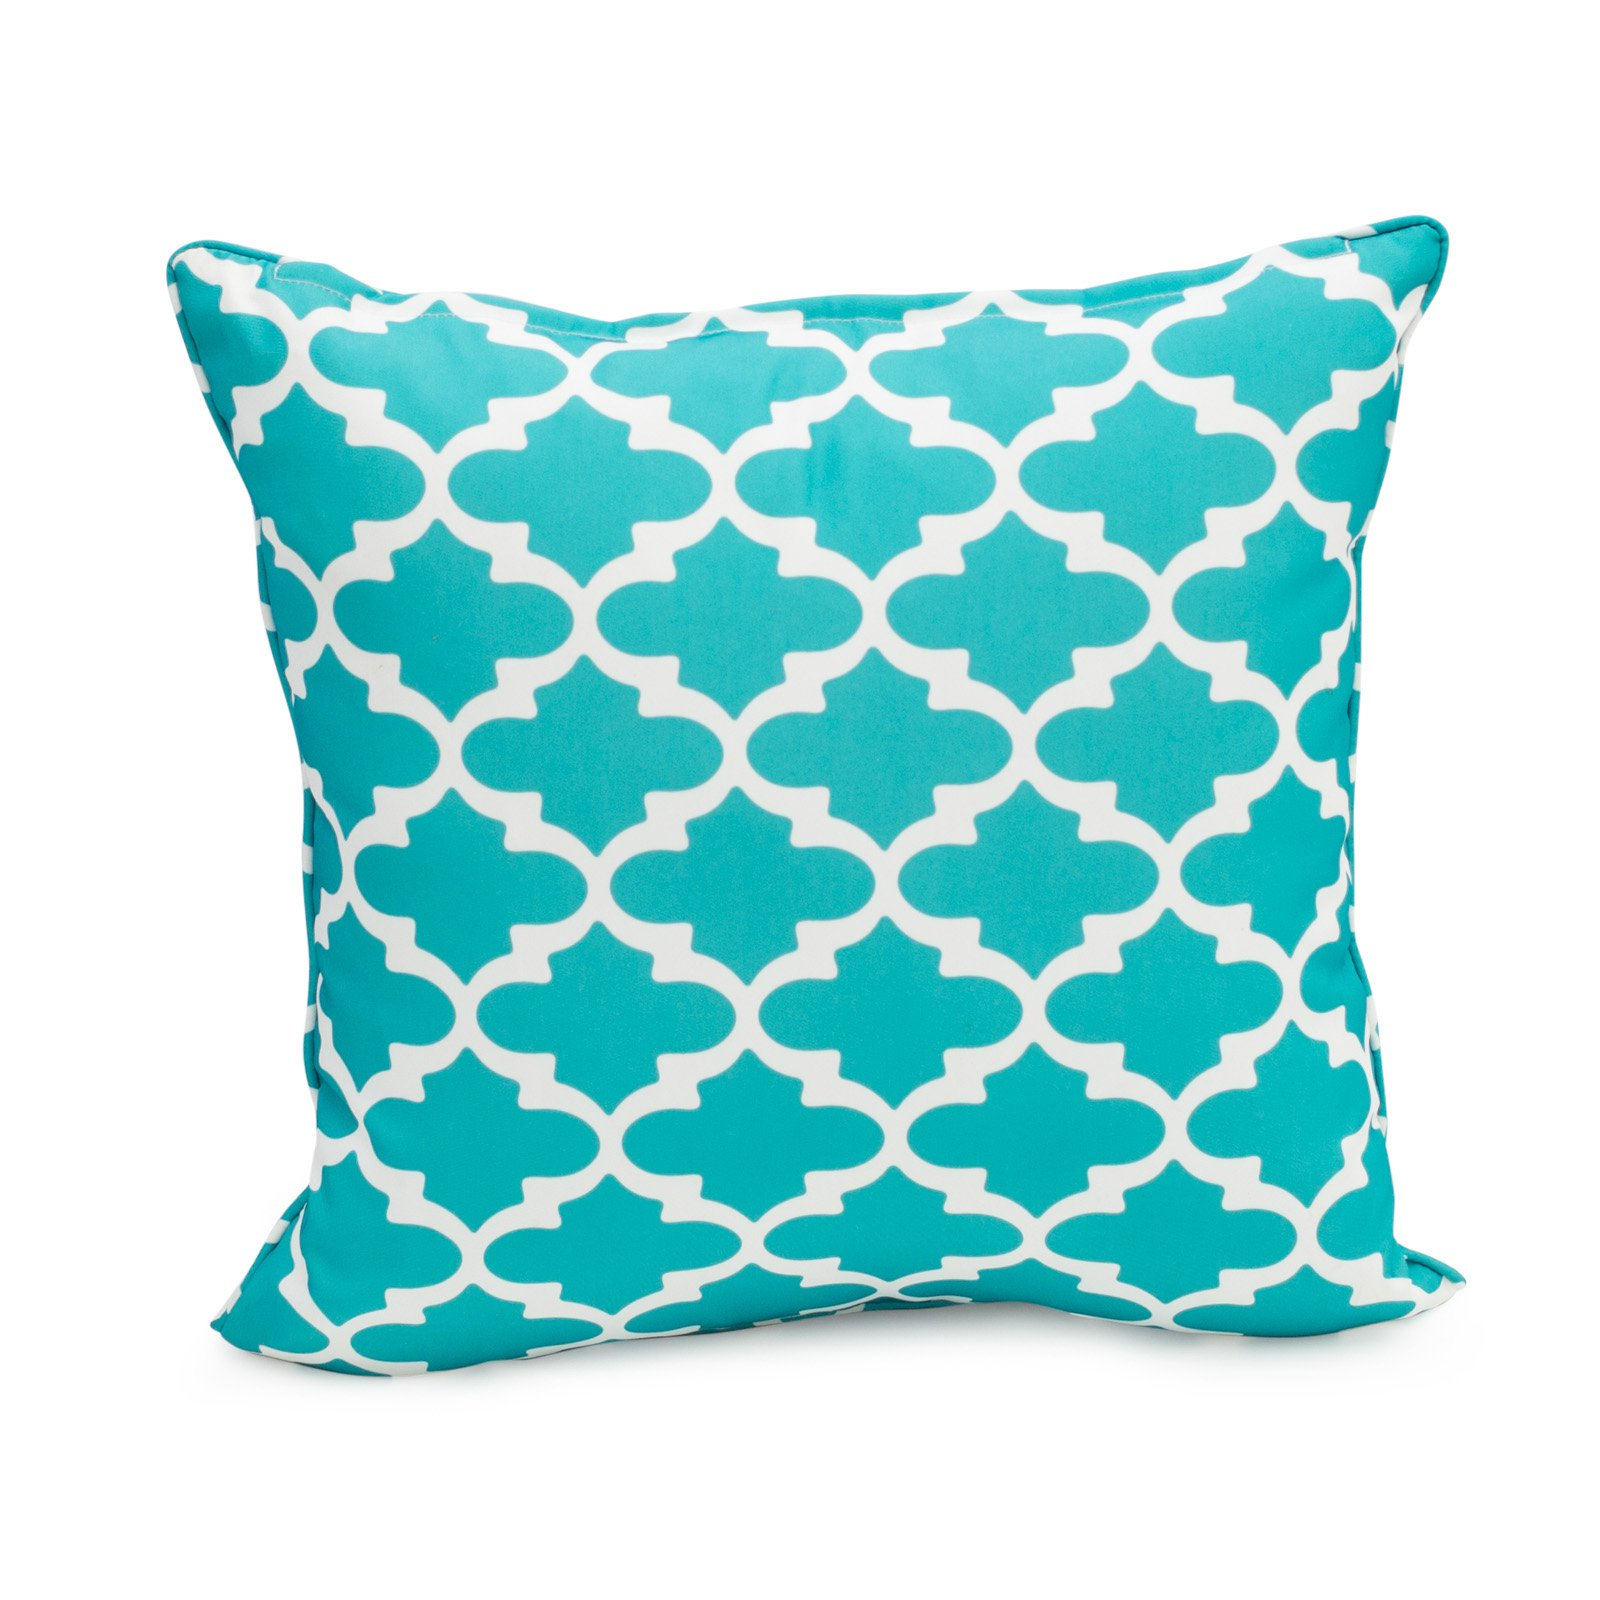 coral coast lakeside 20 x 20 in outdoor throw pillows set of 2